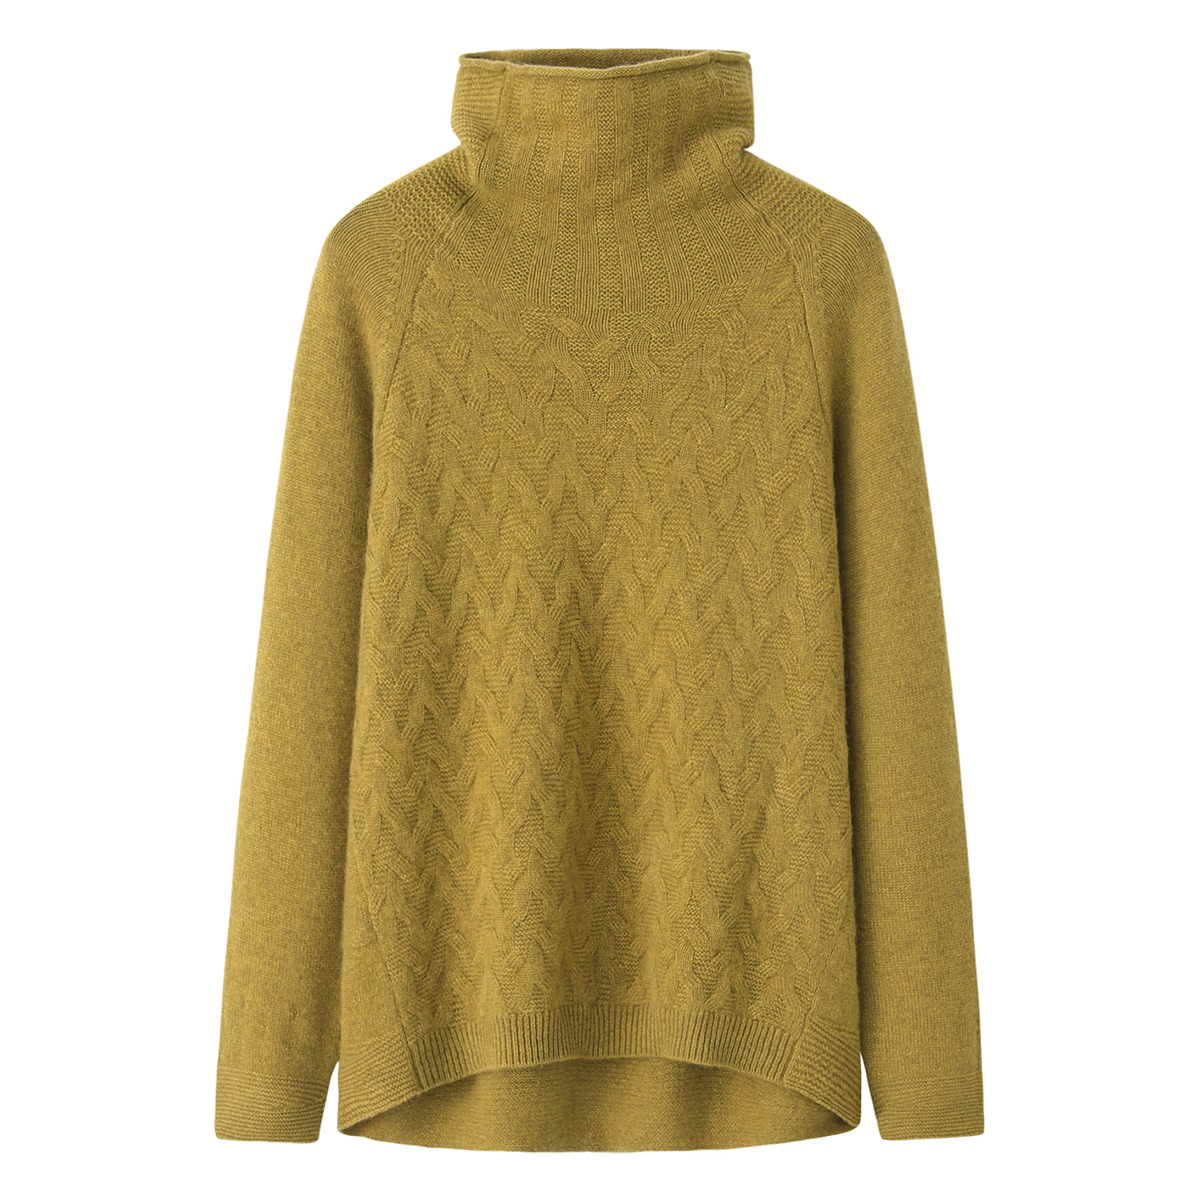 2021 new womens cashmere sweater pile neck hollow knitting thin bottomed sweater loose irregular sweater